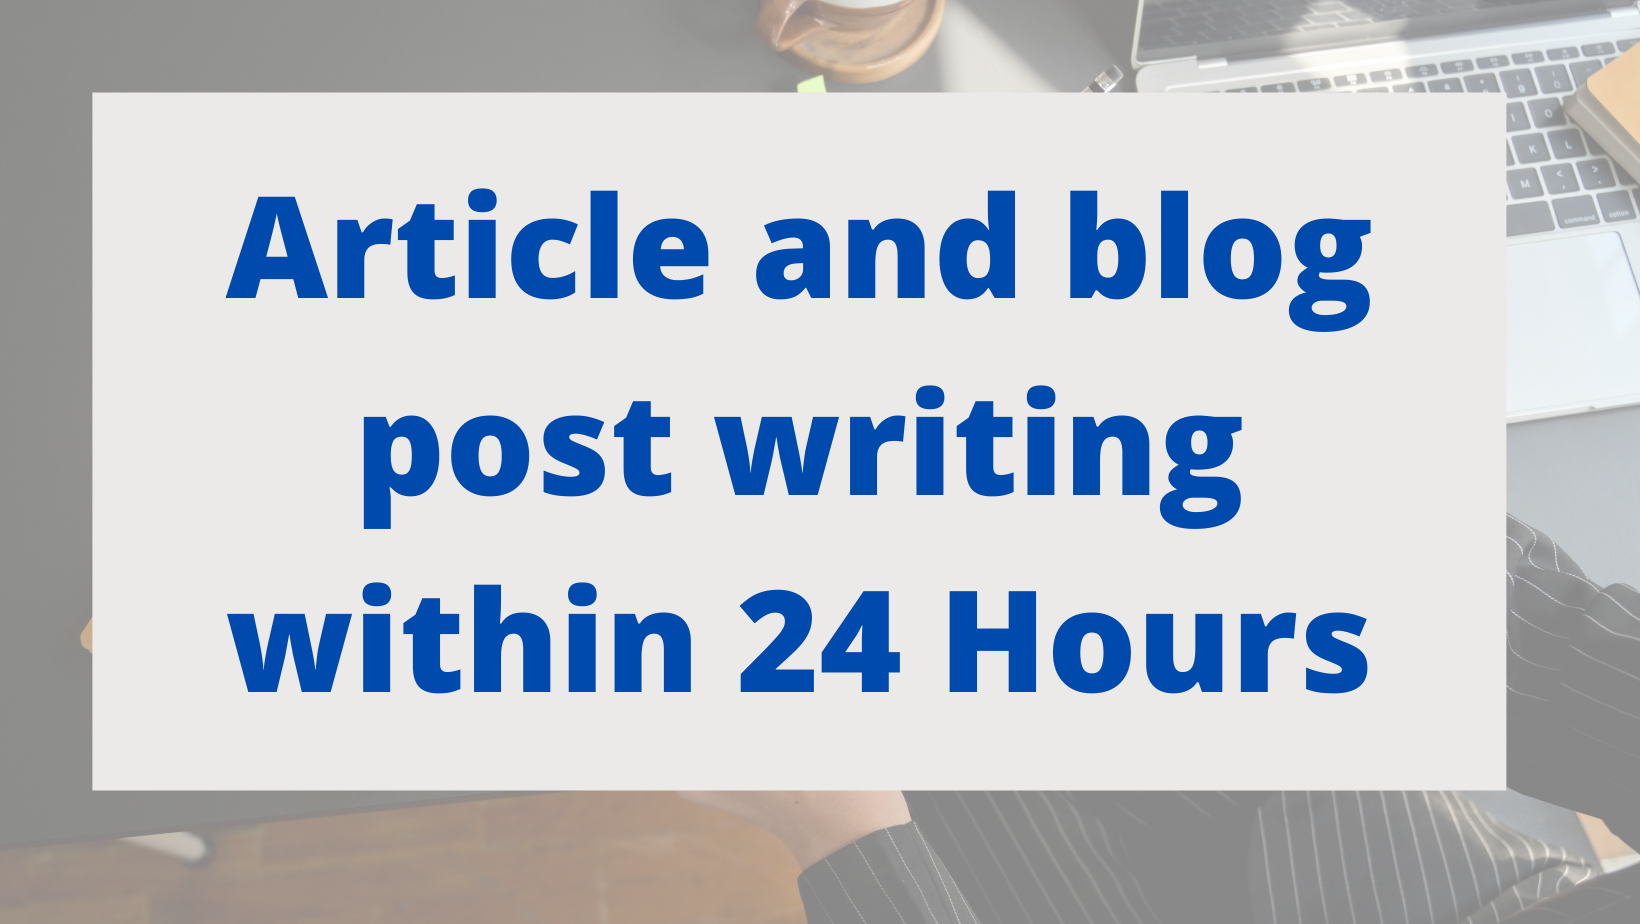 1000 word -article and blog post writing